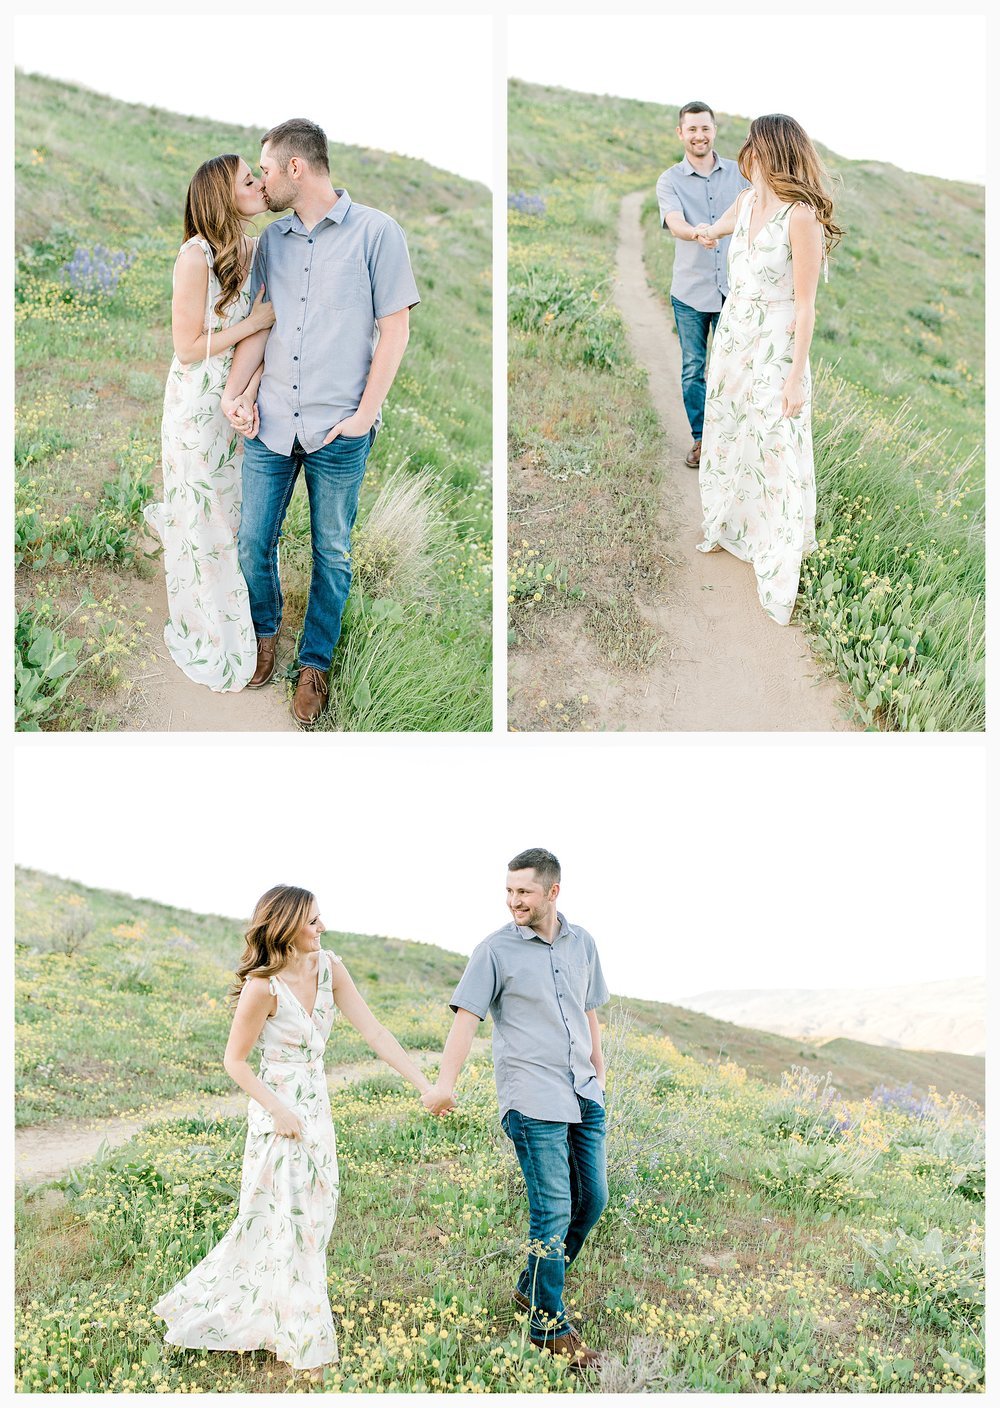 Engagement session amongst the wildflowers in Wenatchee, Washington | Engagement Session Outfit Inspiration for Wedding Photography with Emma Rose Company | Light and Airy PNW Photographer, Seattle Bride_0003.jpg